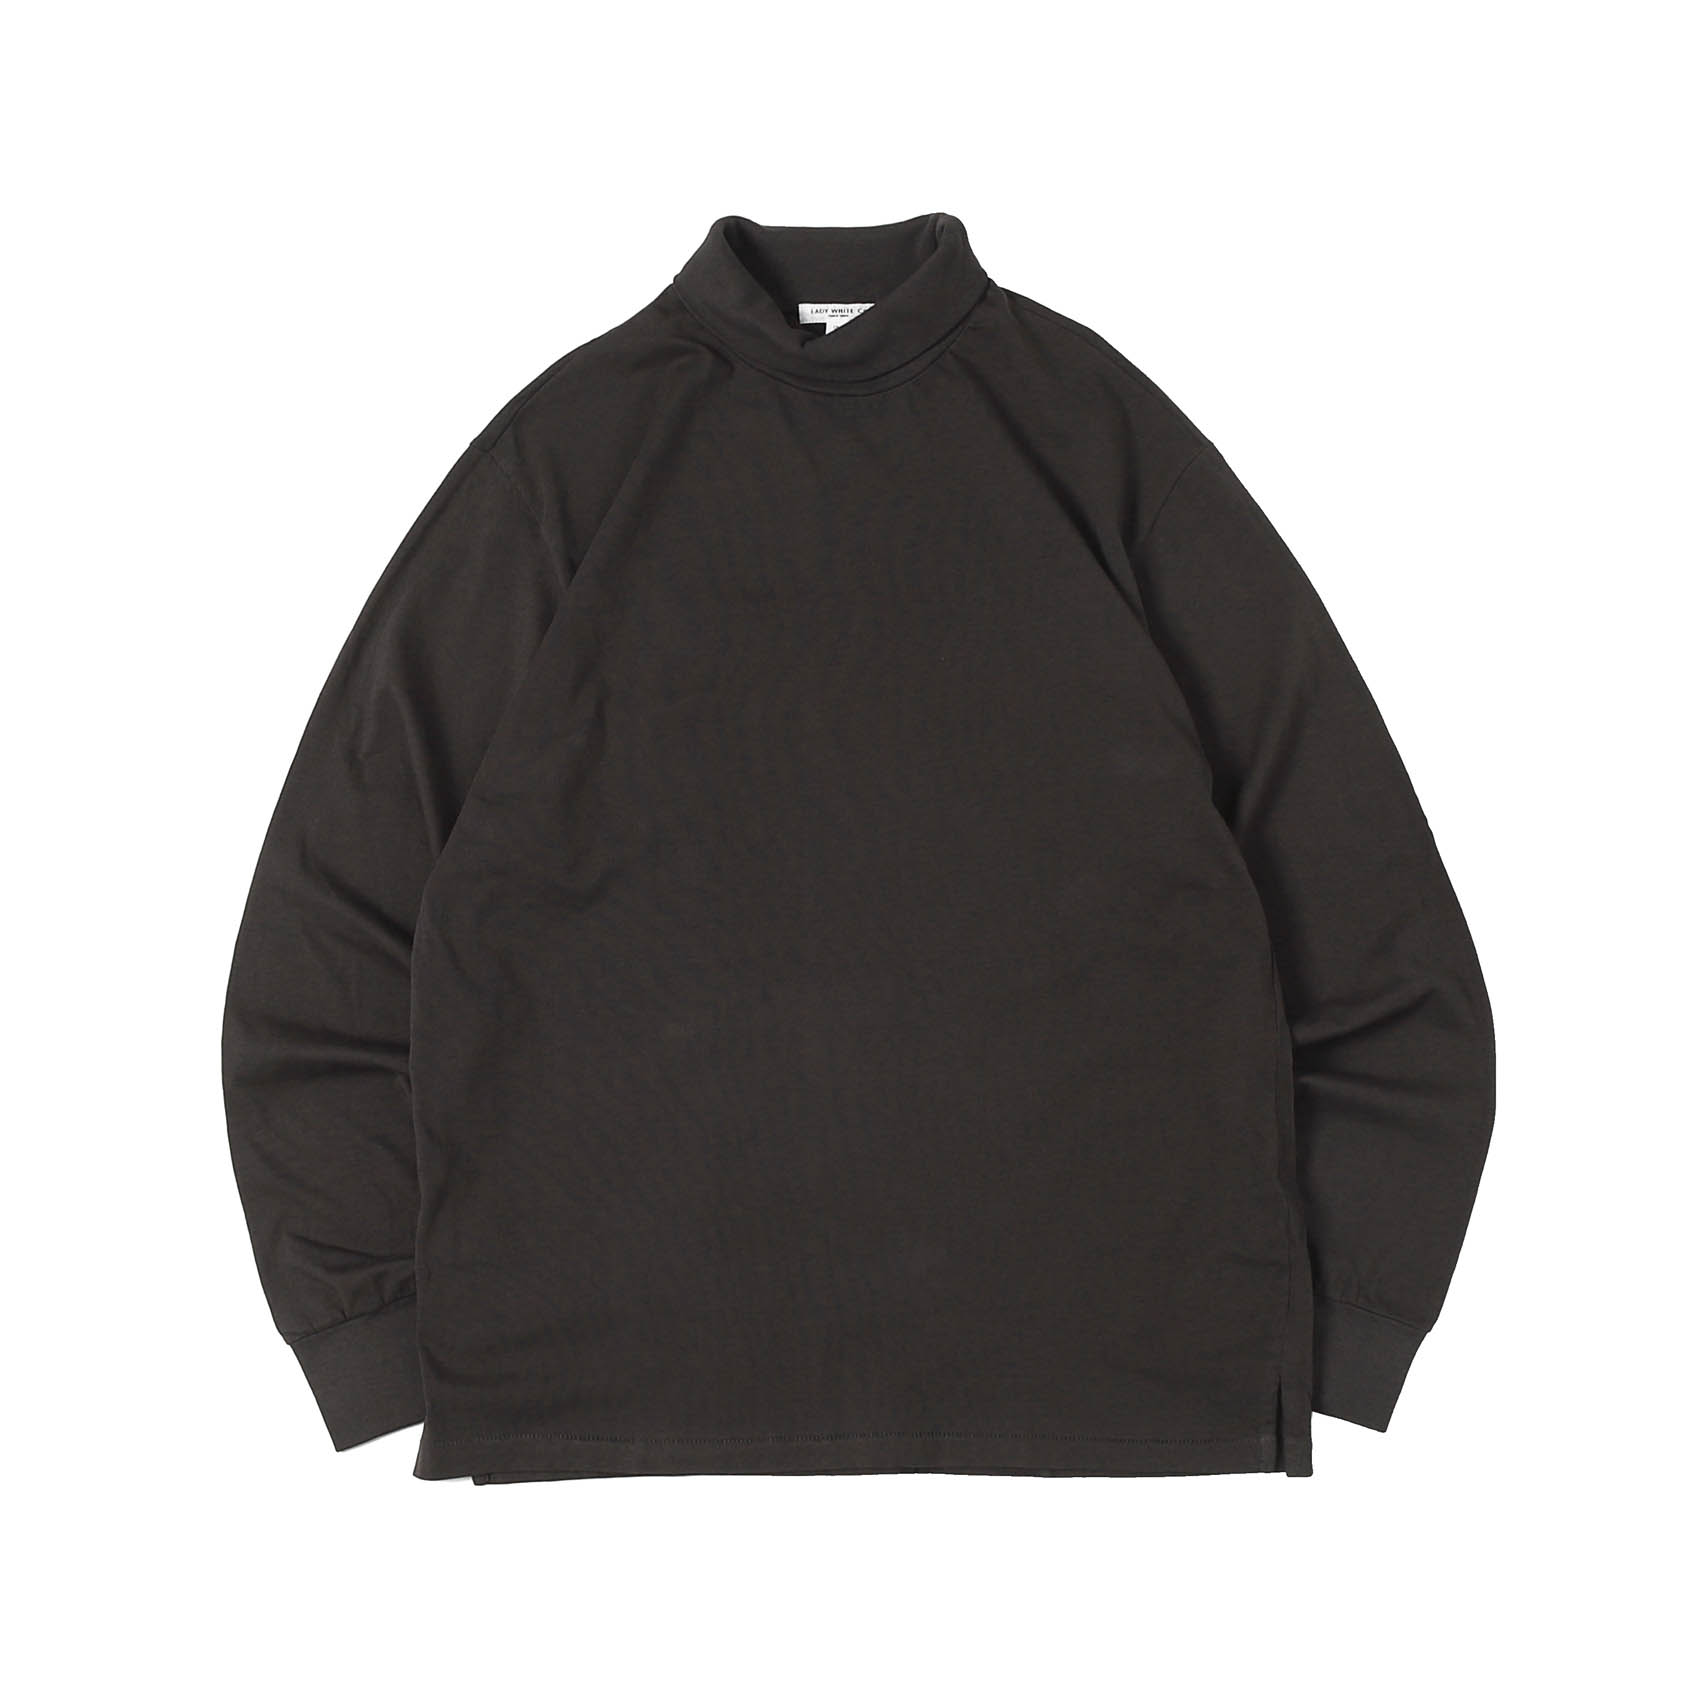 L/S TURTLENECK - TIRE BLACK